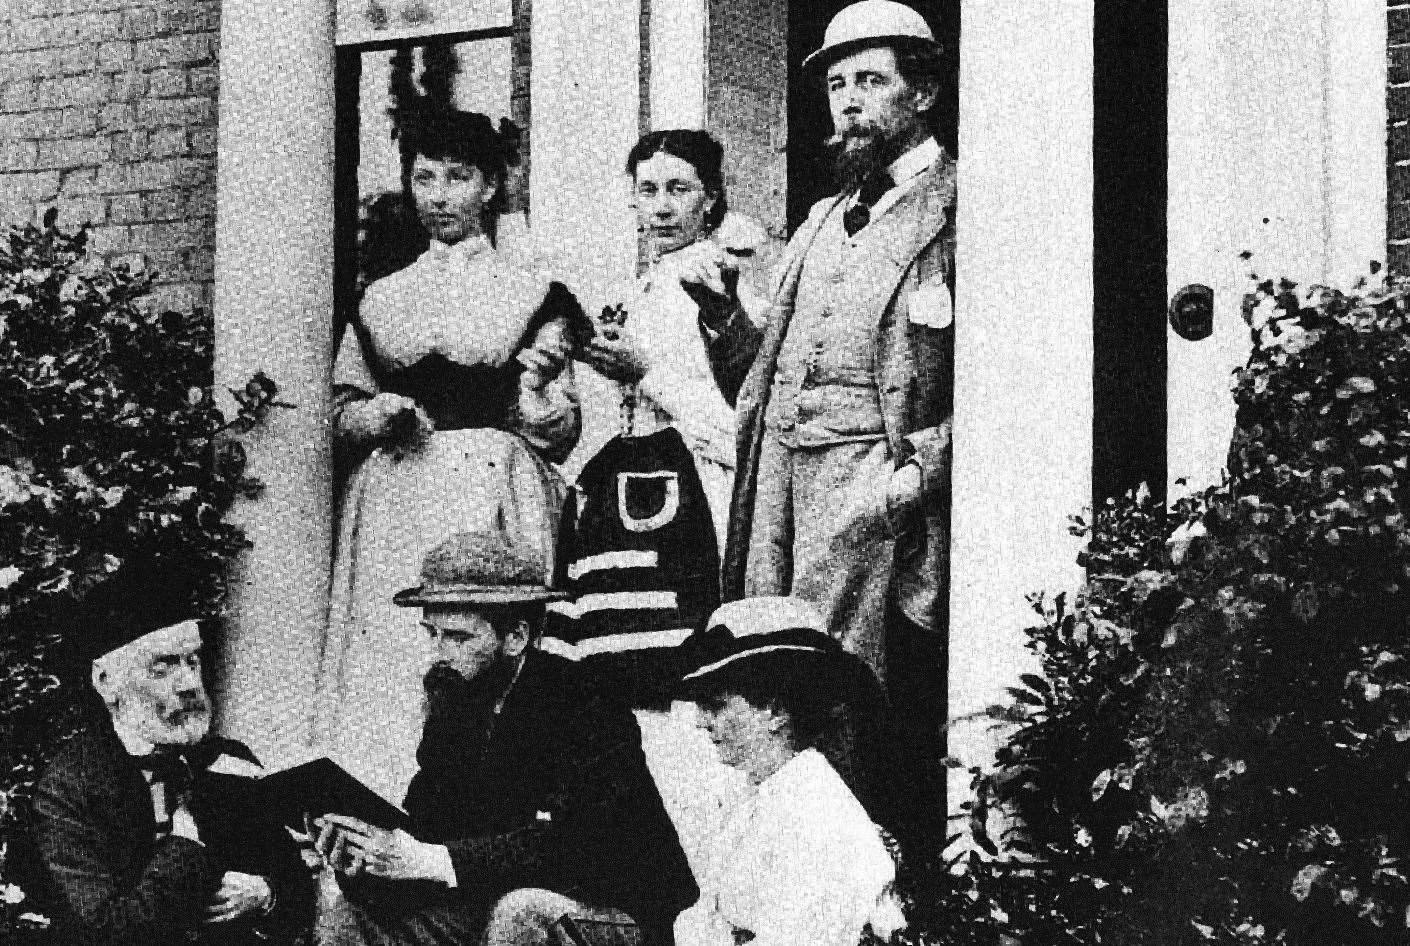 Charles Dickens, far right, in front of his Higham home - today it is Gad's Hill public school. Picture: Gad's Hill School